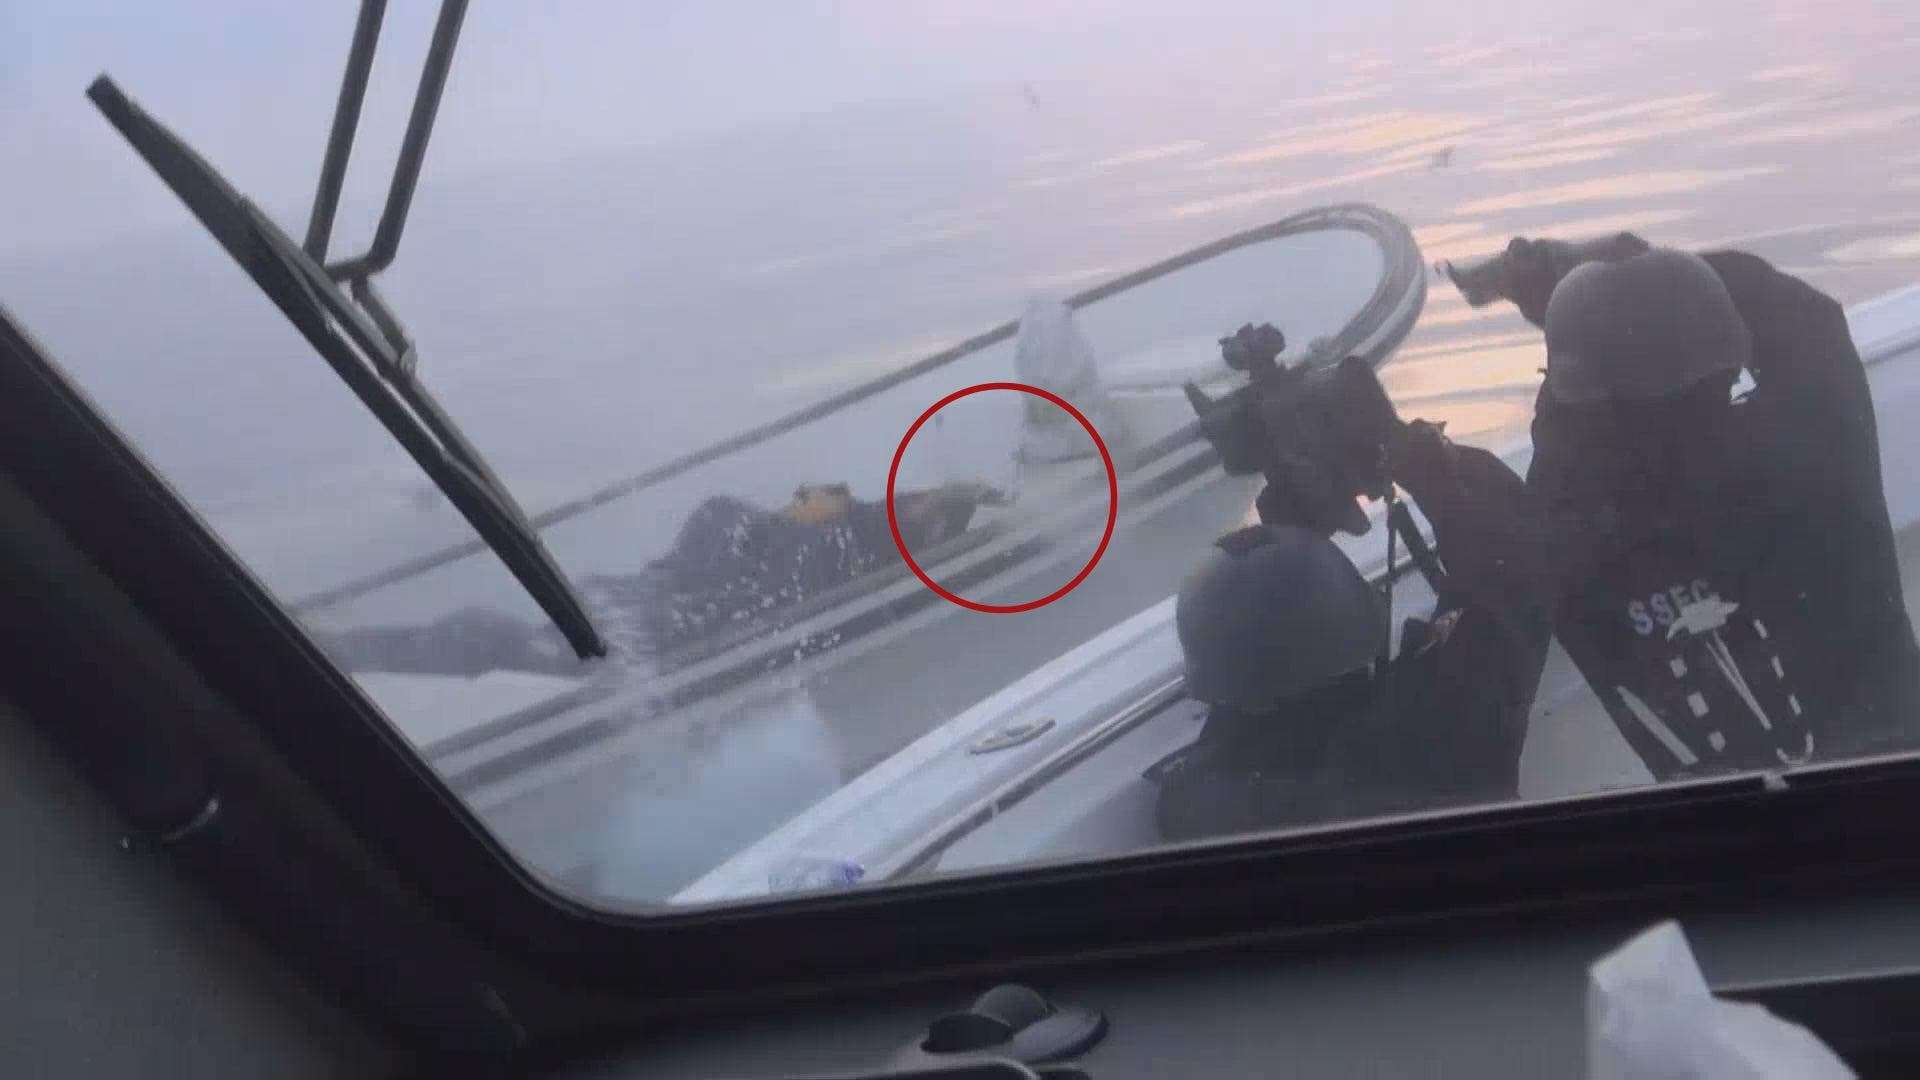 Photos given to Al Arabiya shows a fugitive vessel after it was intercepted by Bahrain's coastguard.